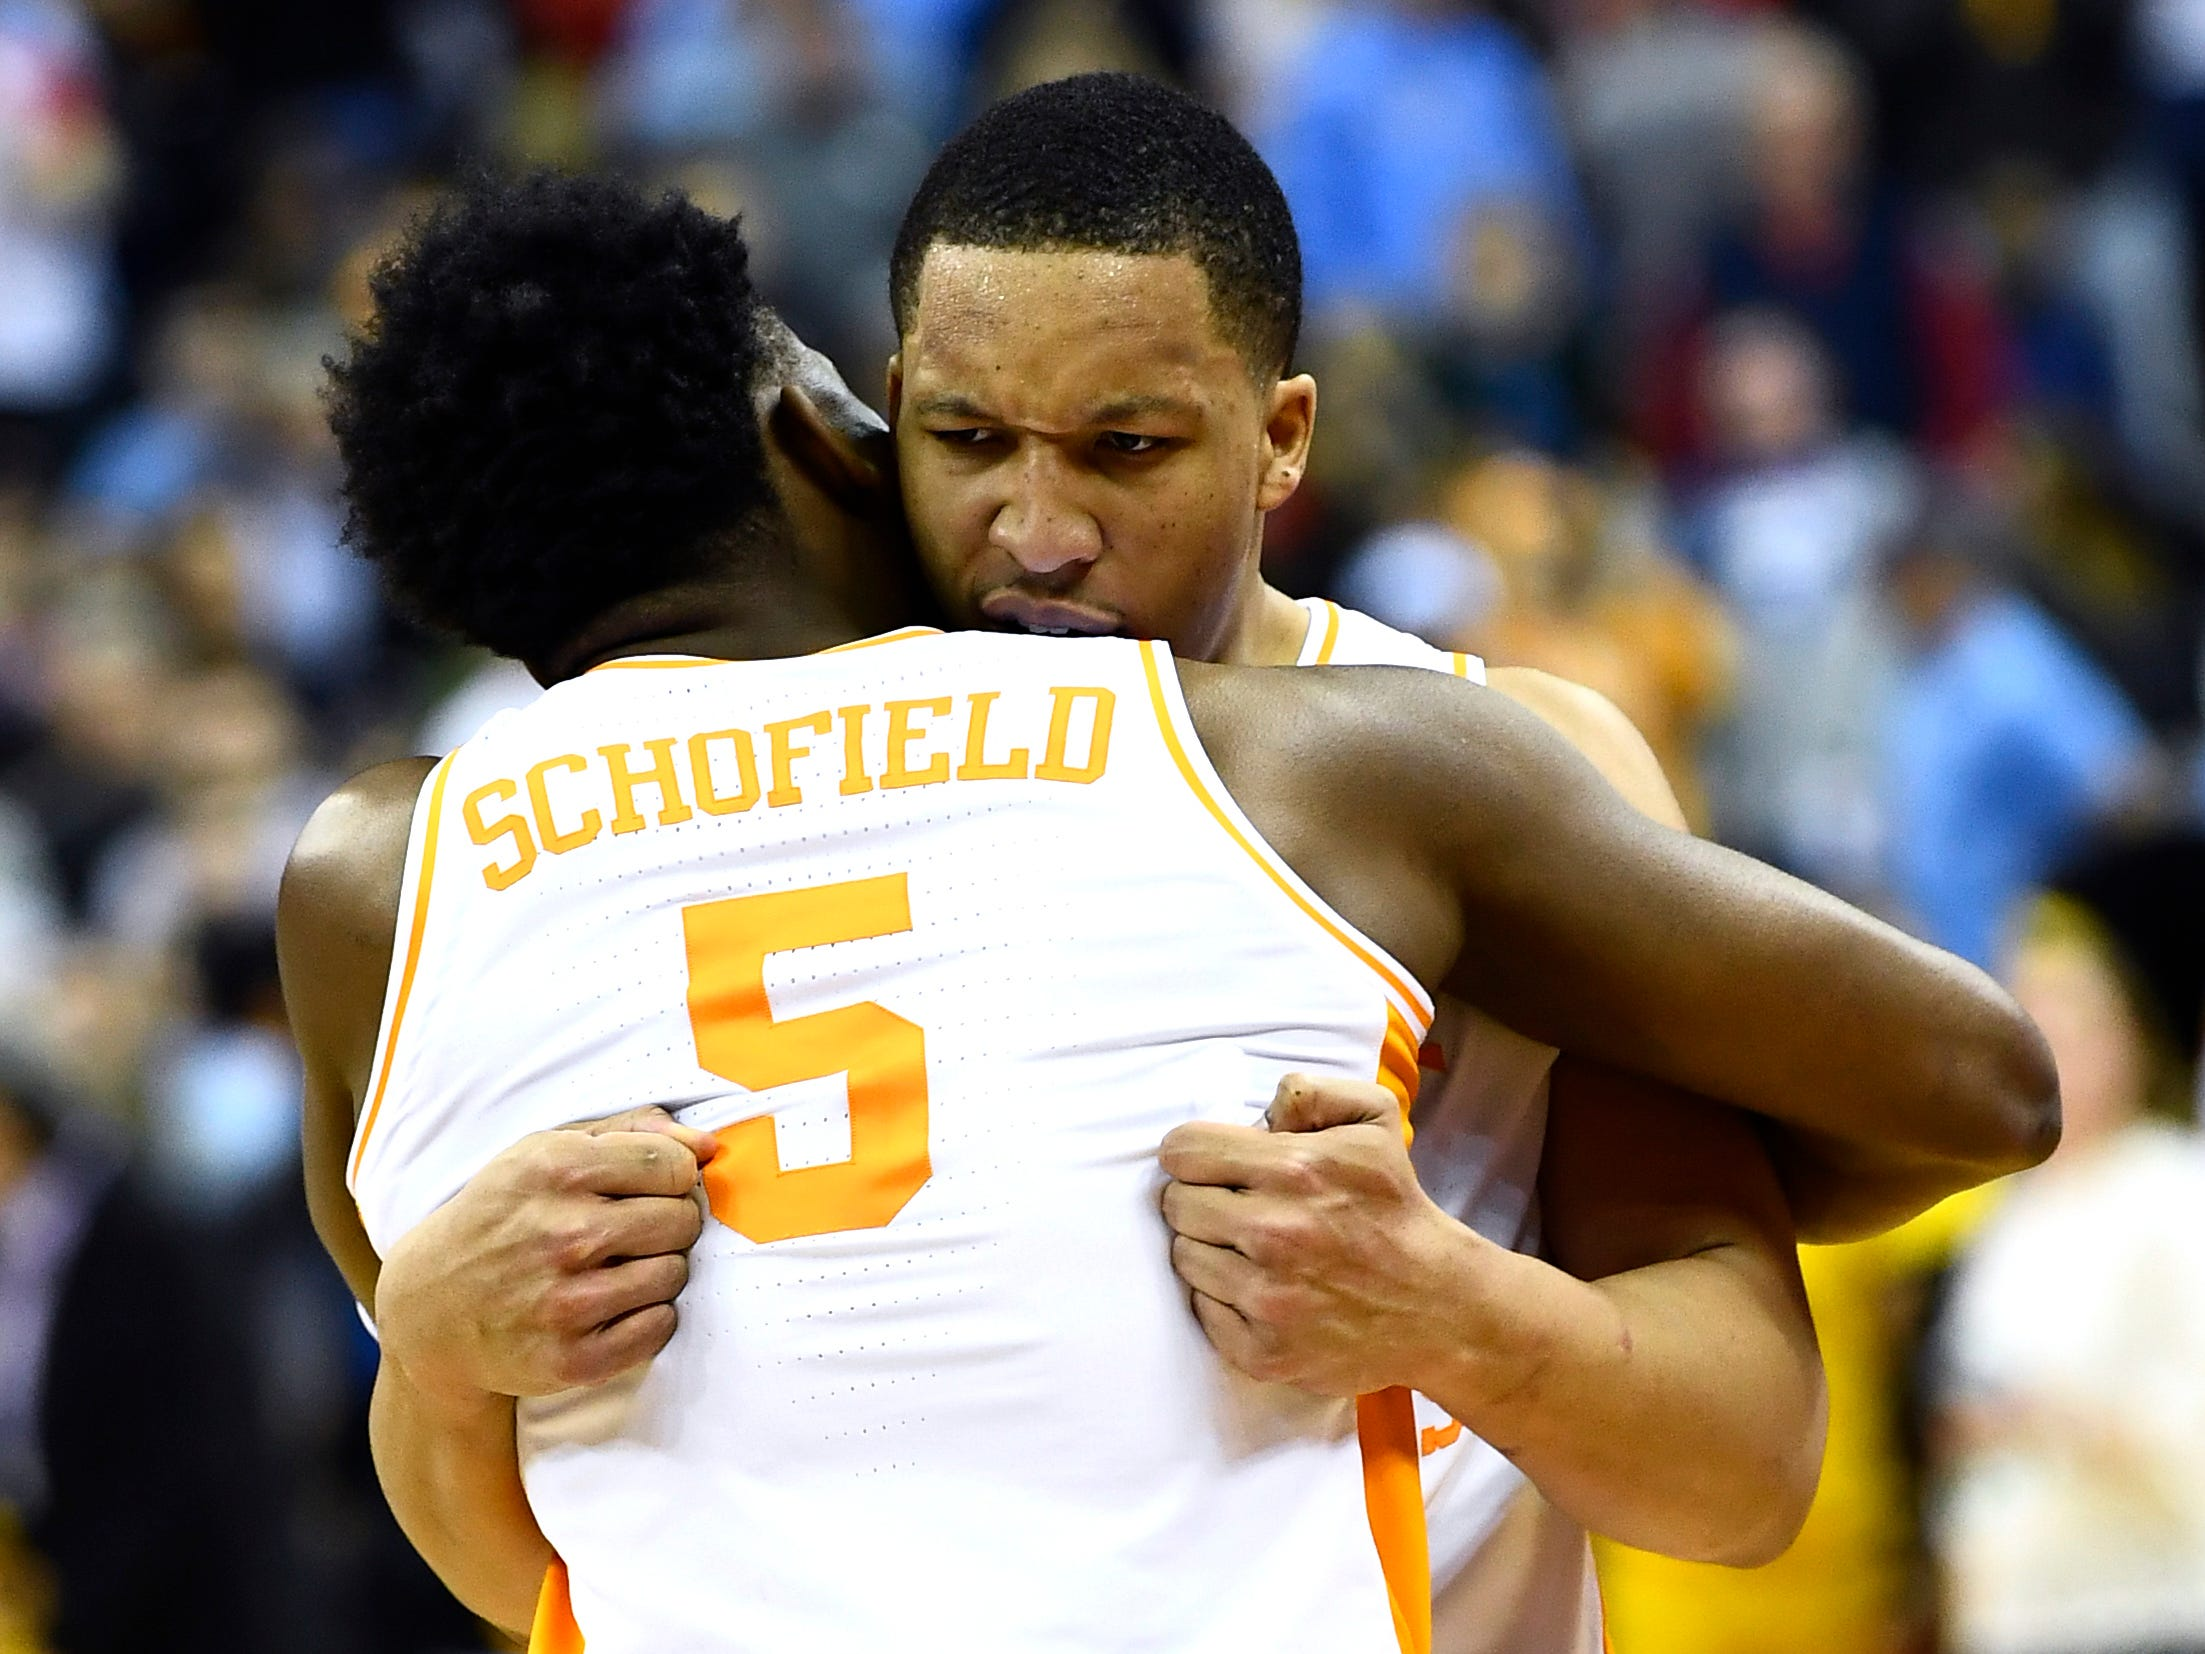 Tennessee guard Admiral Schofield (5) and forward Grant Williams (2) hug after the team's overtime win over the Iowa Hawkeyes in the second round of the NCAA Tournament at Nationwide Arena in Columbus, Ohio, Sunday, March 24, 2019.